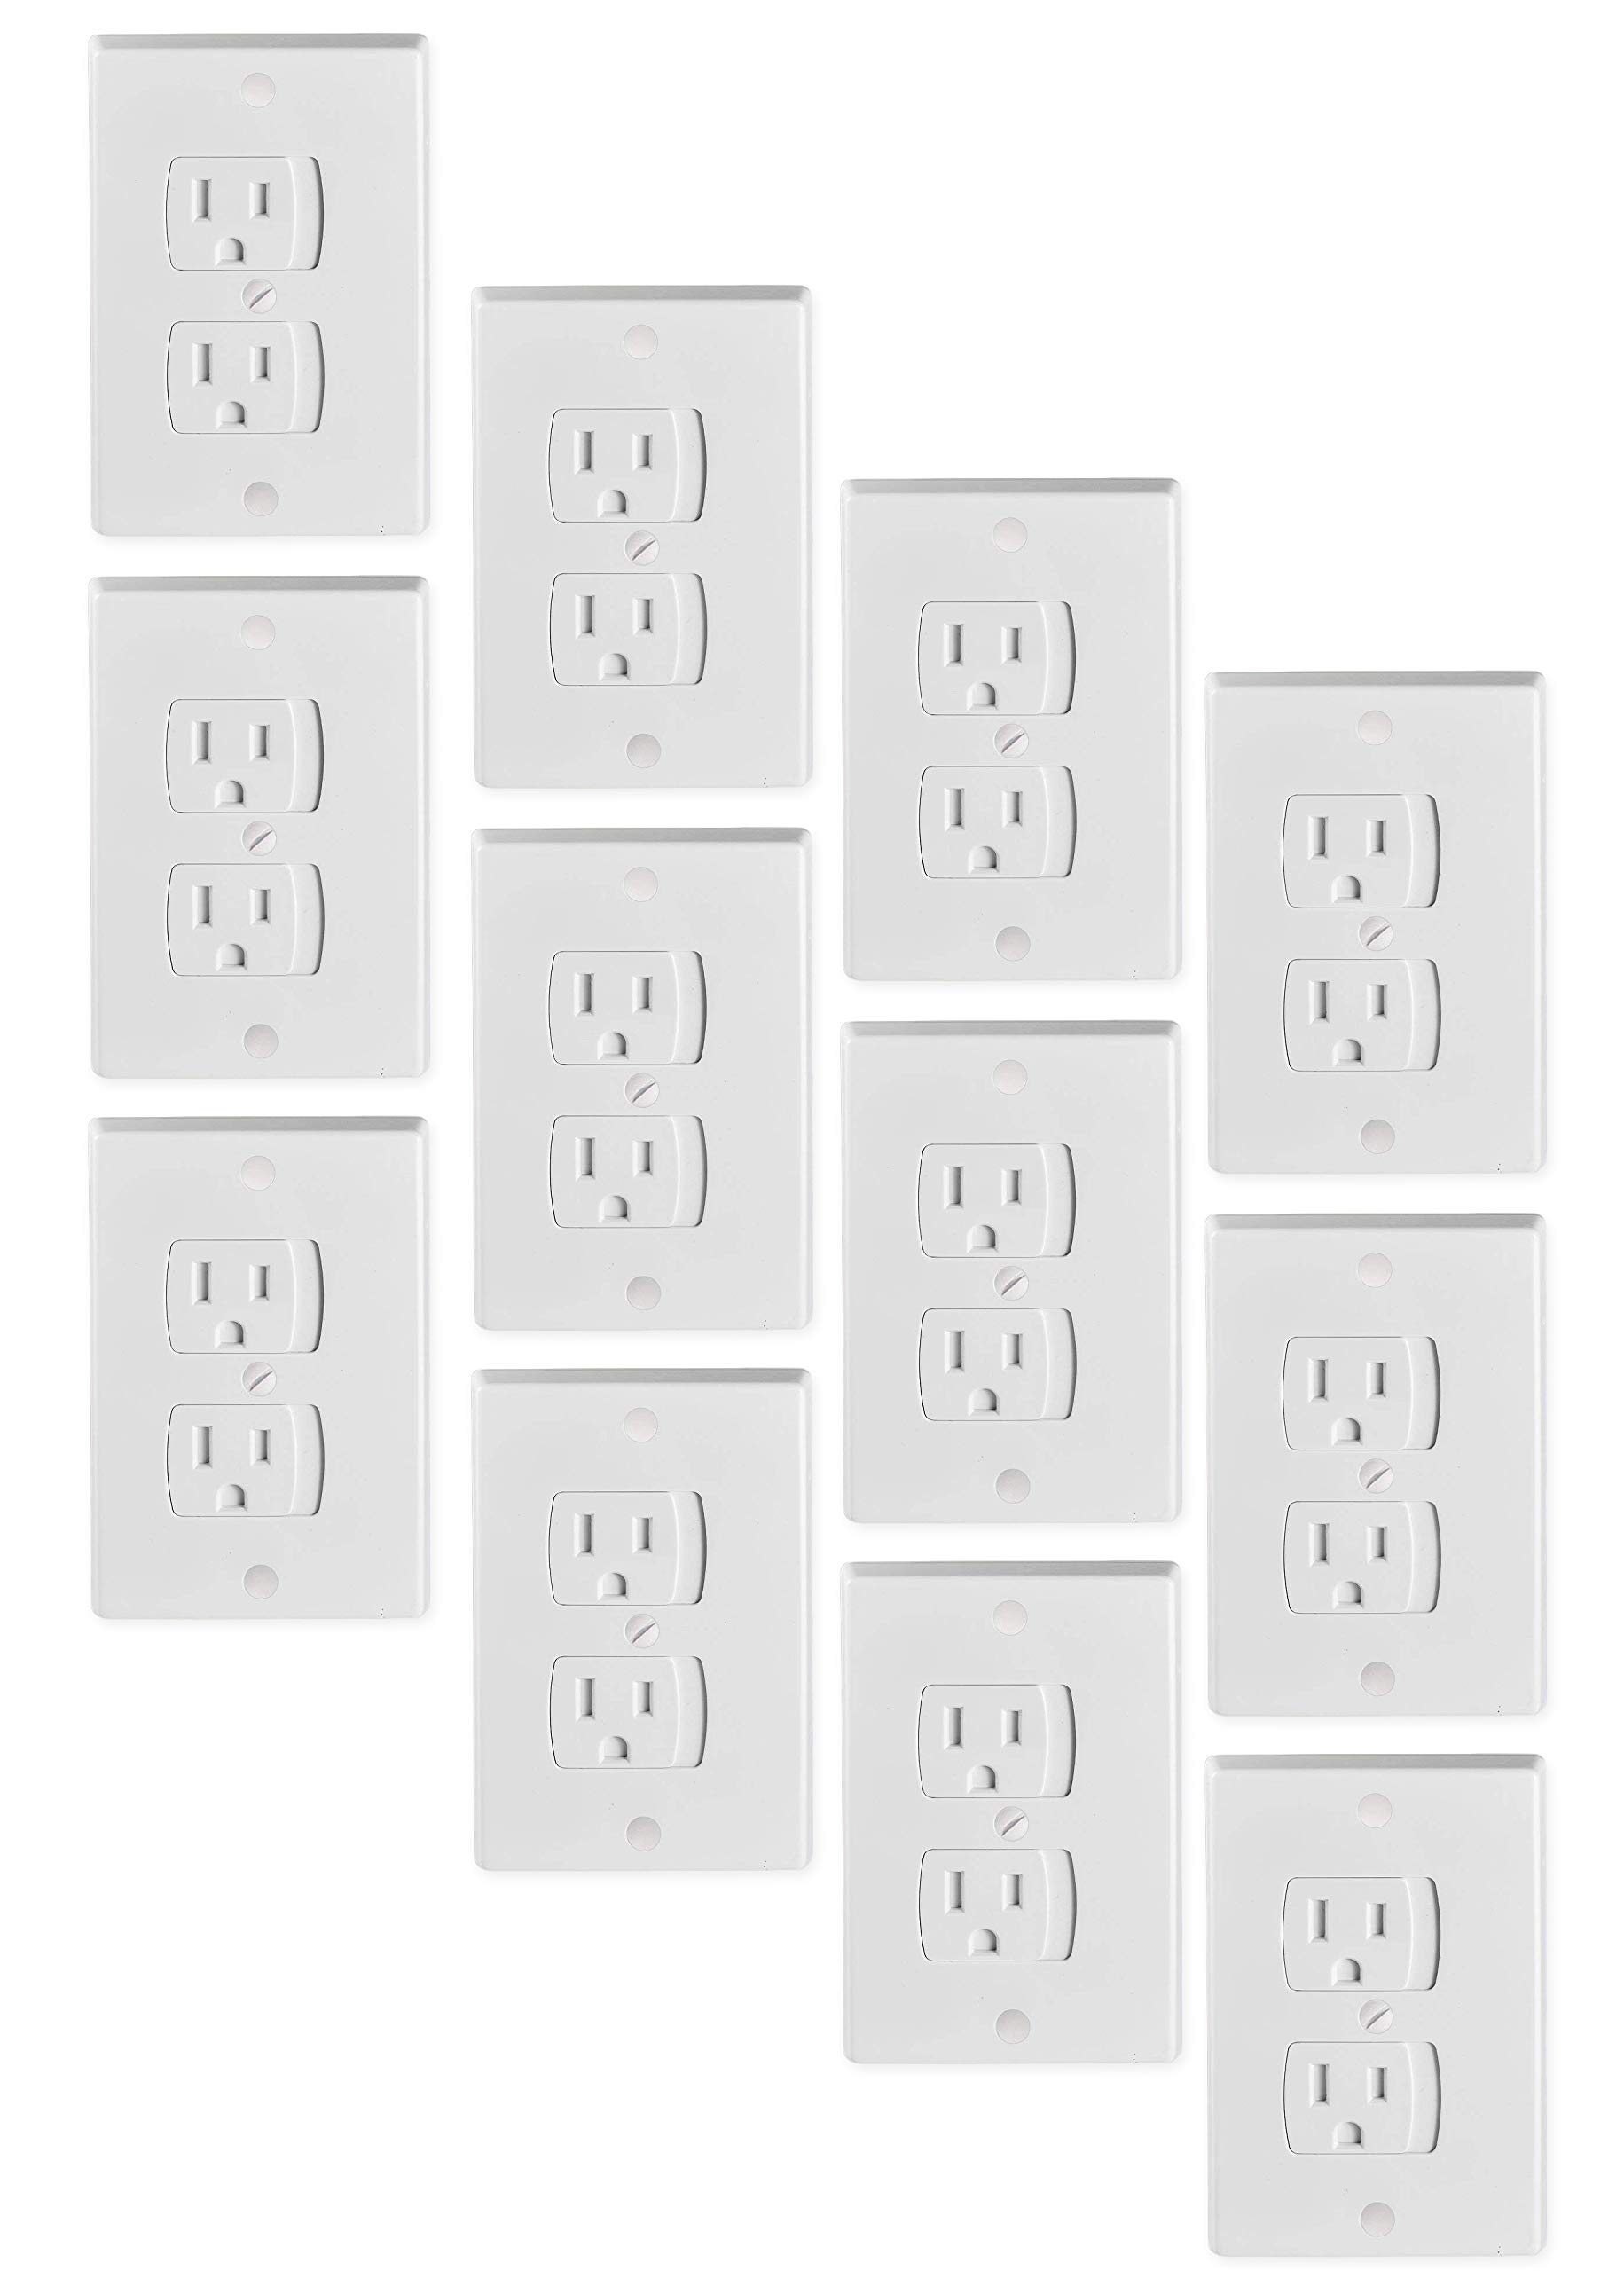 Tiger Chef Universal White 12-Pack Self-Closing Electrical Light Switch Outlet Covers Plate, Baby Proofing Child Safet6 by Tiger Chef